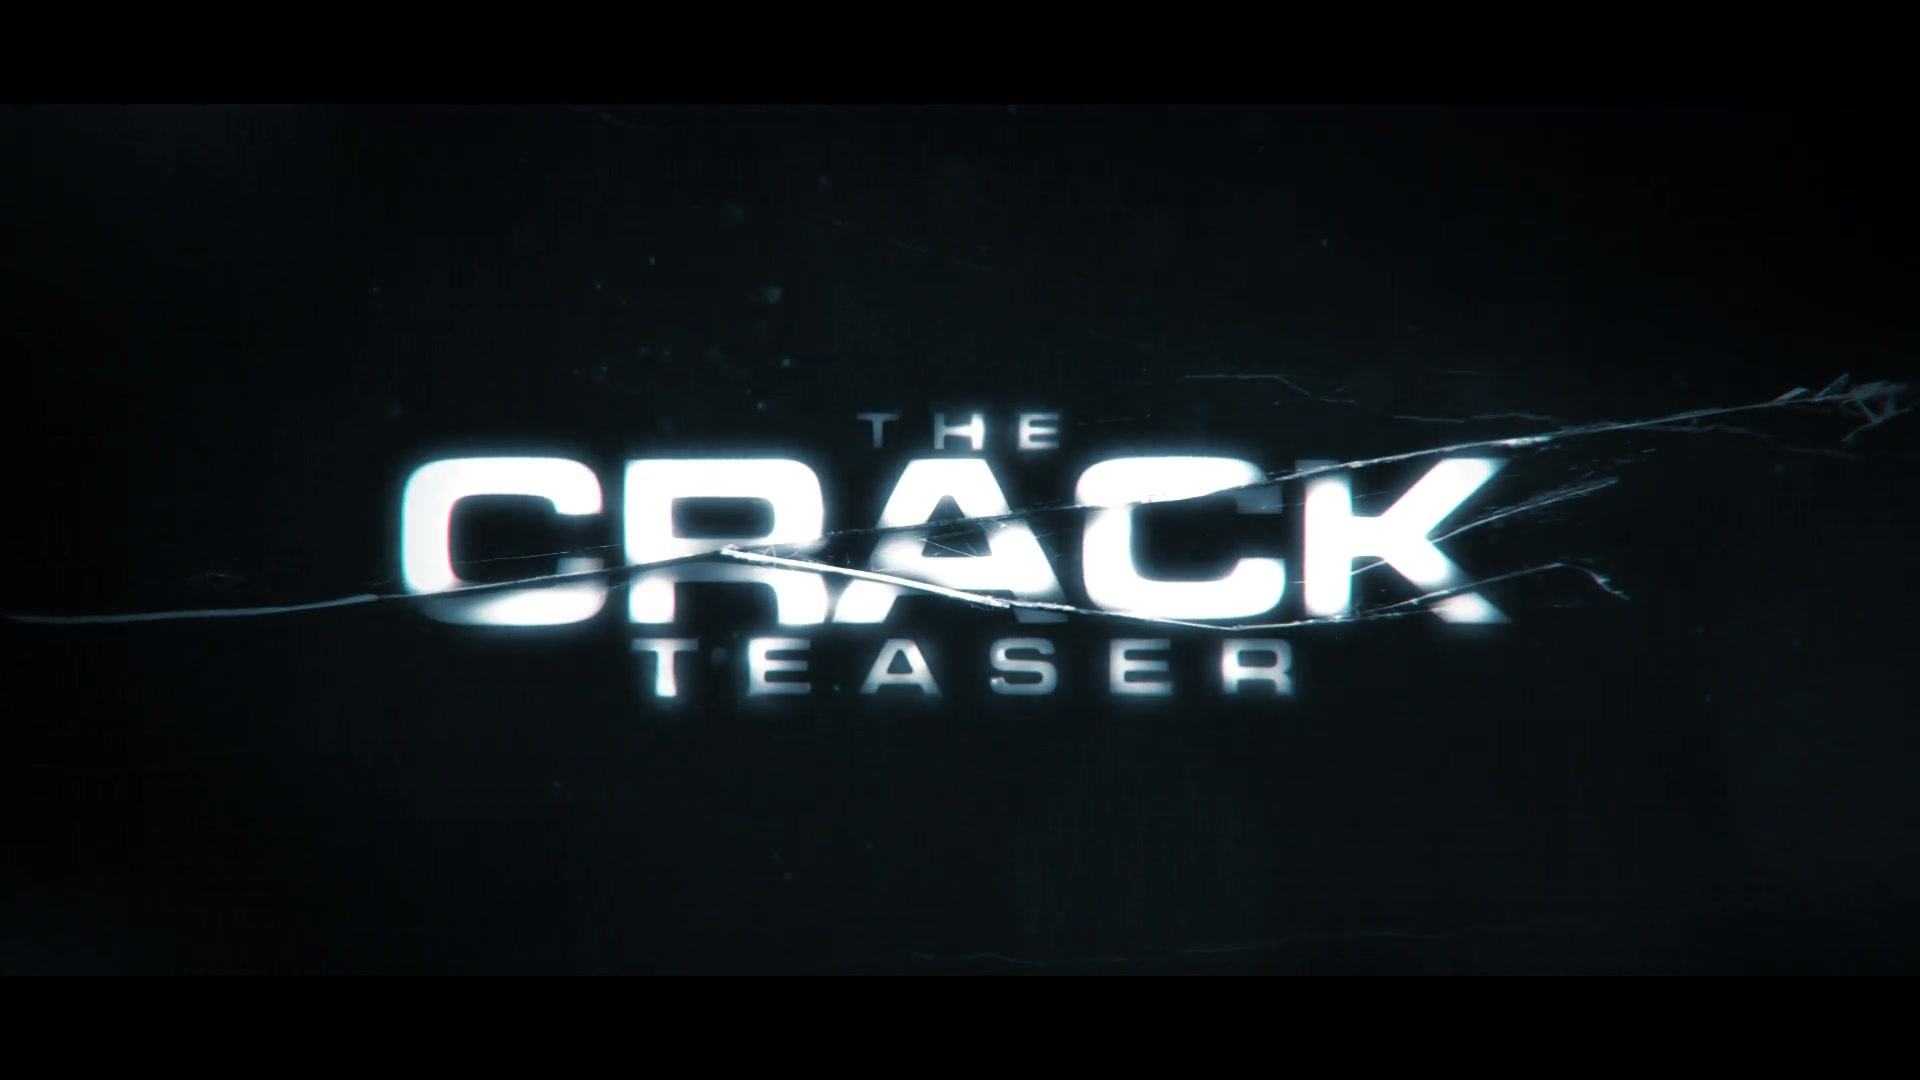 Crack Teaser Videohive 23185009 After Effects Image 4